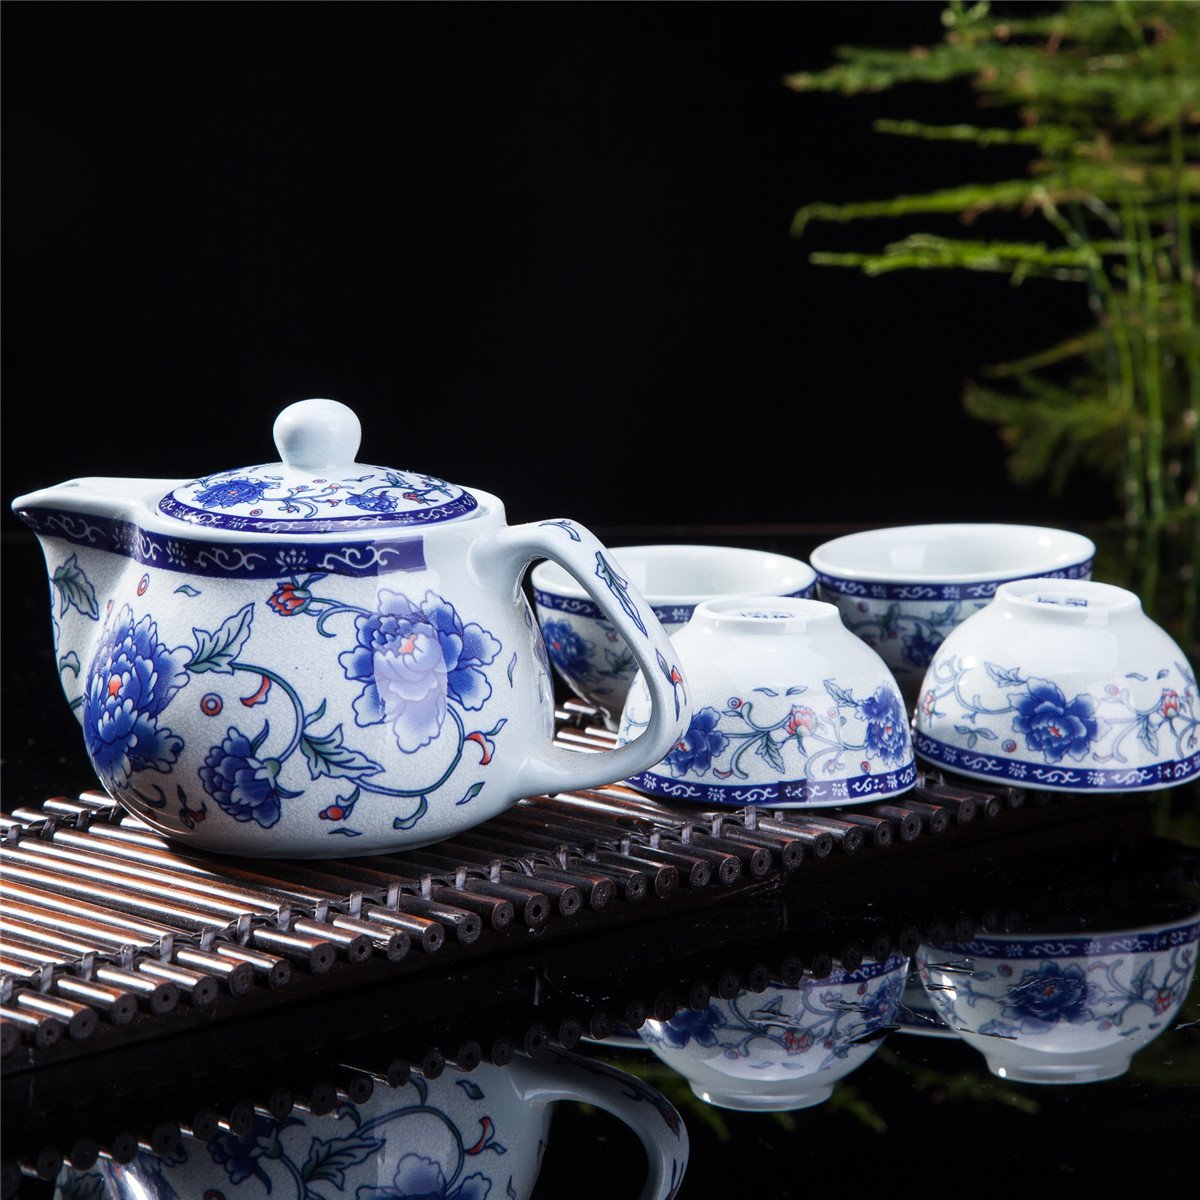 Exquisite 5 PCS Blue-And-White Peony Design Ceramic Tea Pot Tea Cups Set In Beautiful Color Gift Box THY TRADING